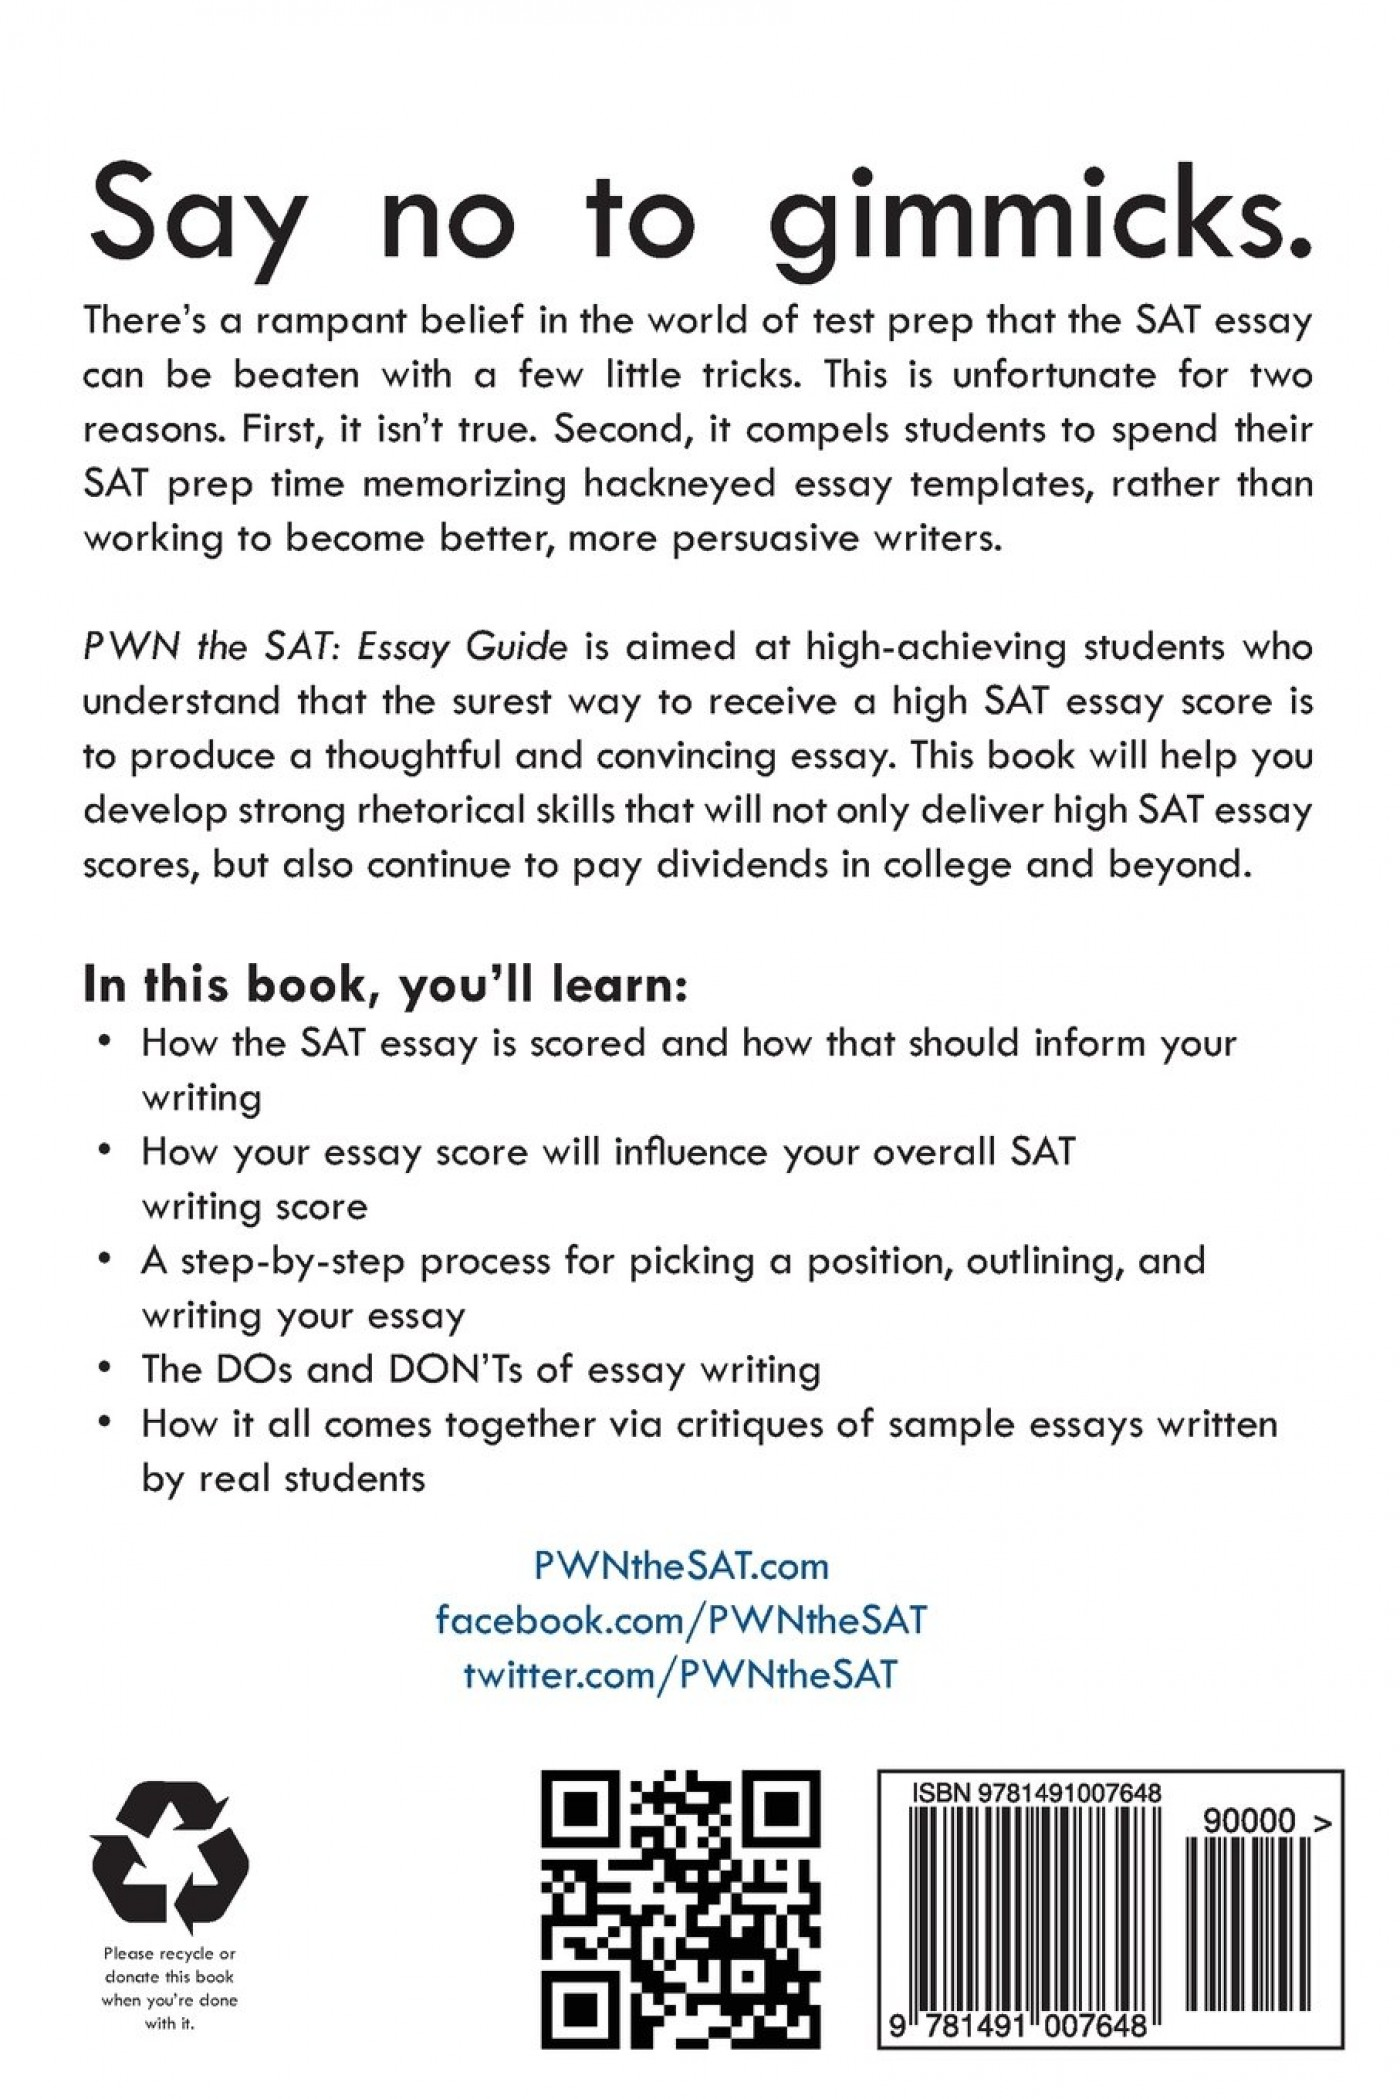 014 Essay Example 712bcqjf85sl What Is The Breathtaking Sat Score Out Of 24 Old 2017 1400